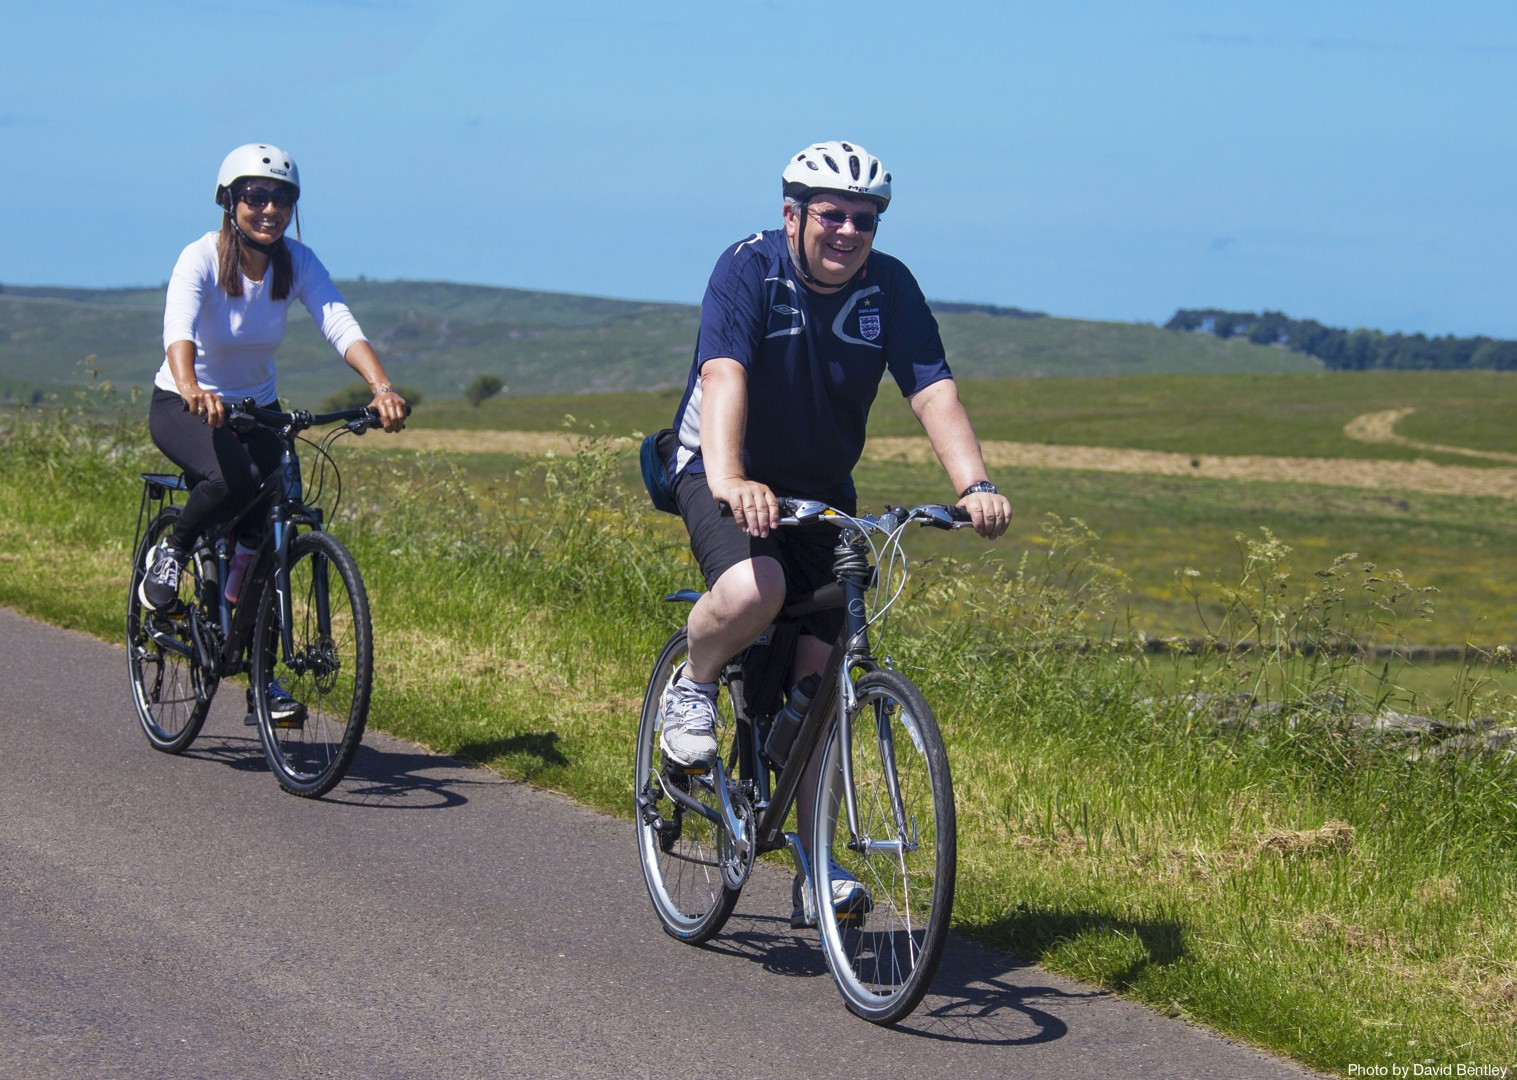 UK-Hadrians-Cycleway-Self-Guided-Leisure-Cycling-Holiday.jpg - UK - Hadrian's Cycleway - 4 Days Cycling - Self-Guided Leisure Cycling Holiday - Leisure Cycling